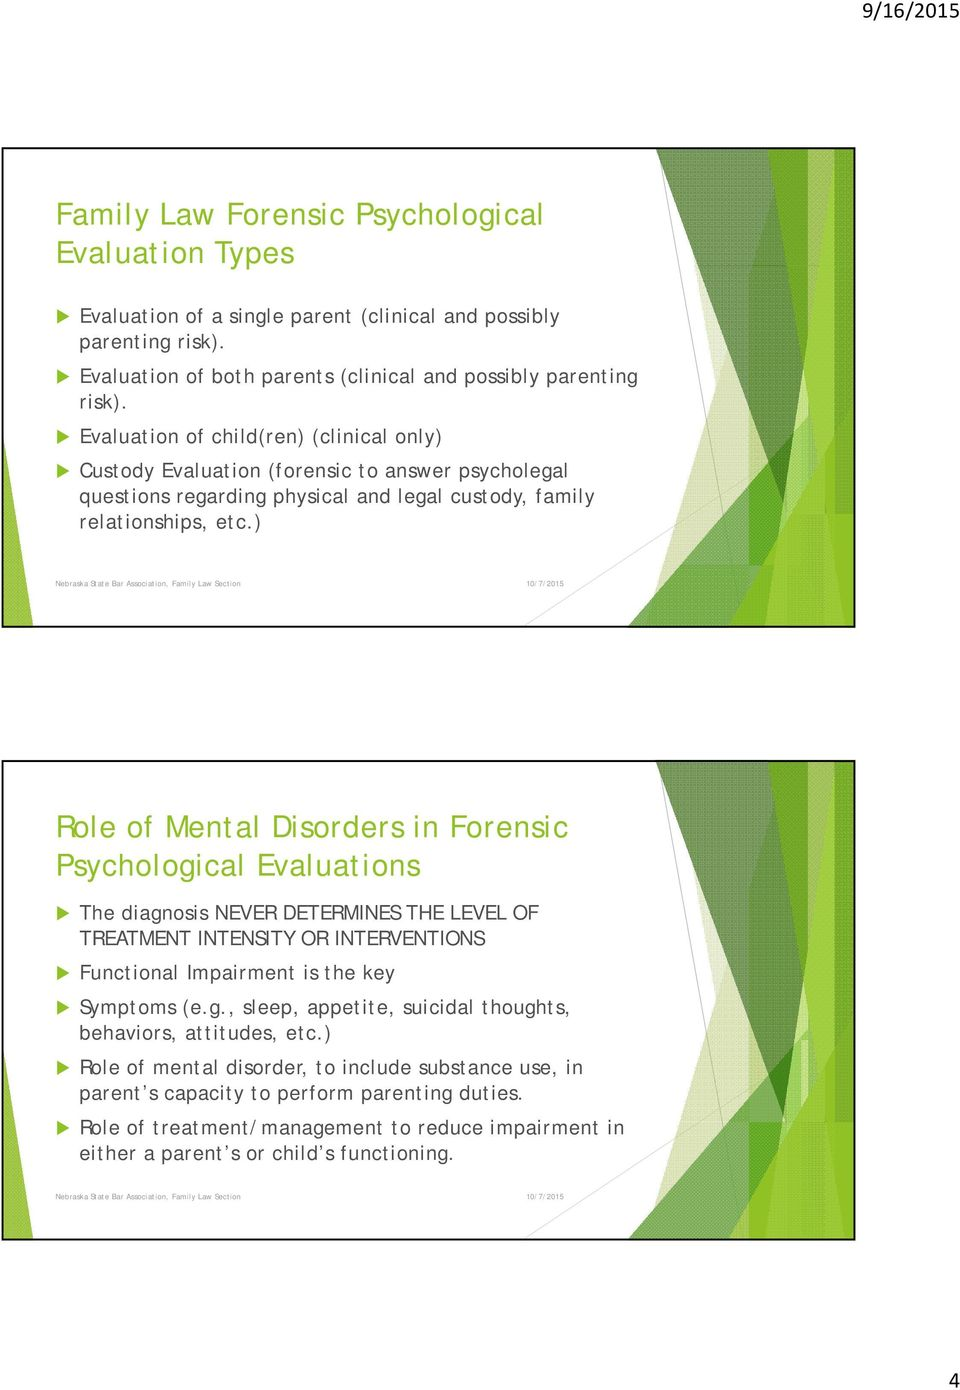 ) Role of Mental Disorders in Forensic Psychological Evaluations The diagnosis NEVER DETERMINES THE LEVEL OF TREATMENT INTENSITY OR INTERVENTIONS Functional Impairment is the key Symptoms (e.g., sleep, appetite, suicidal thoughts, behaviors, attitudes, etc.